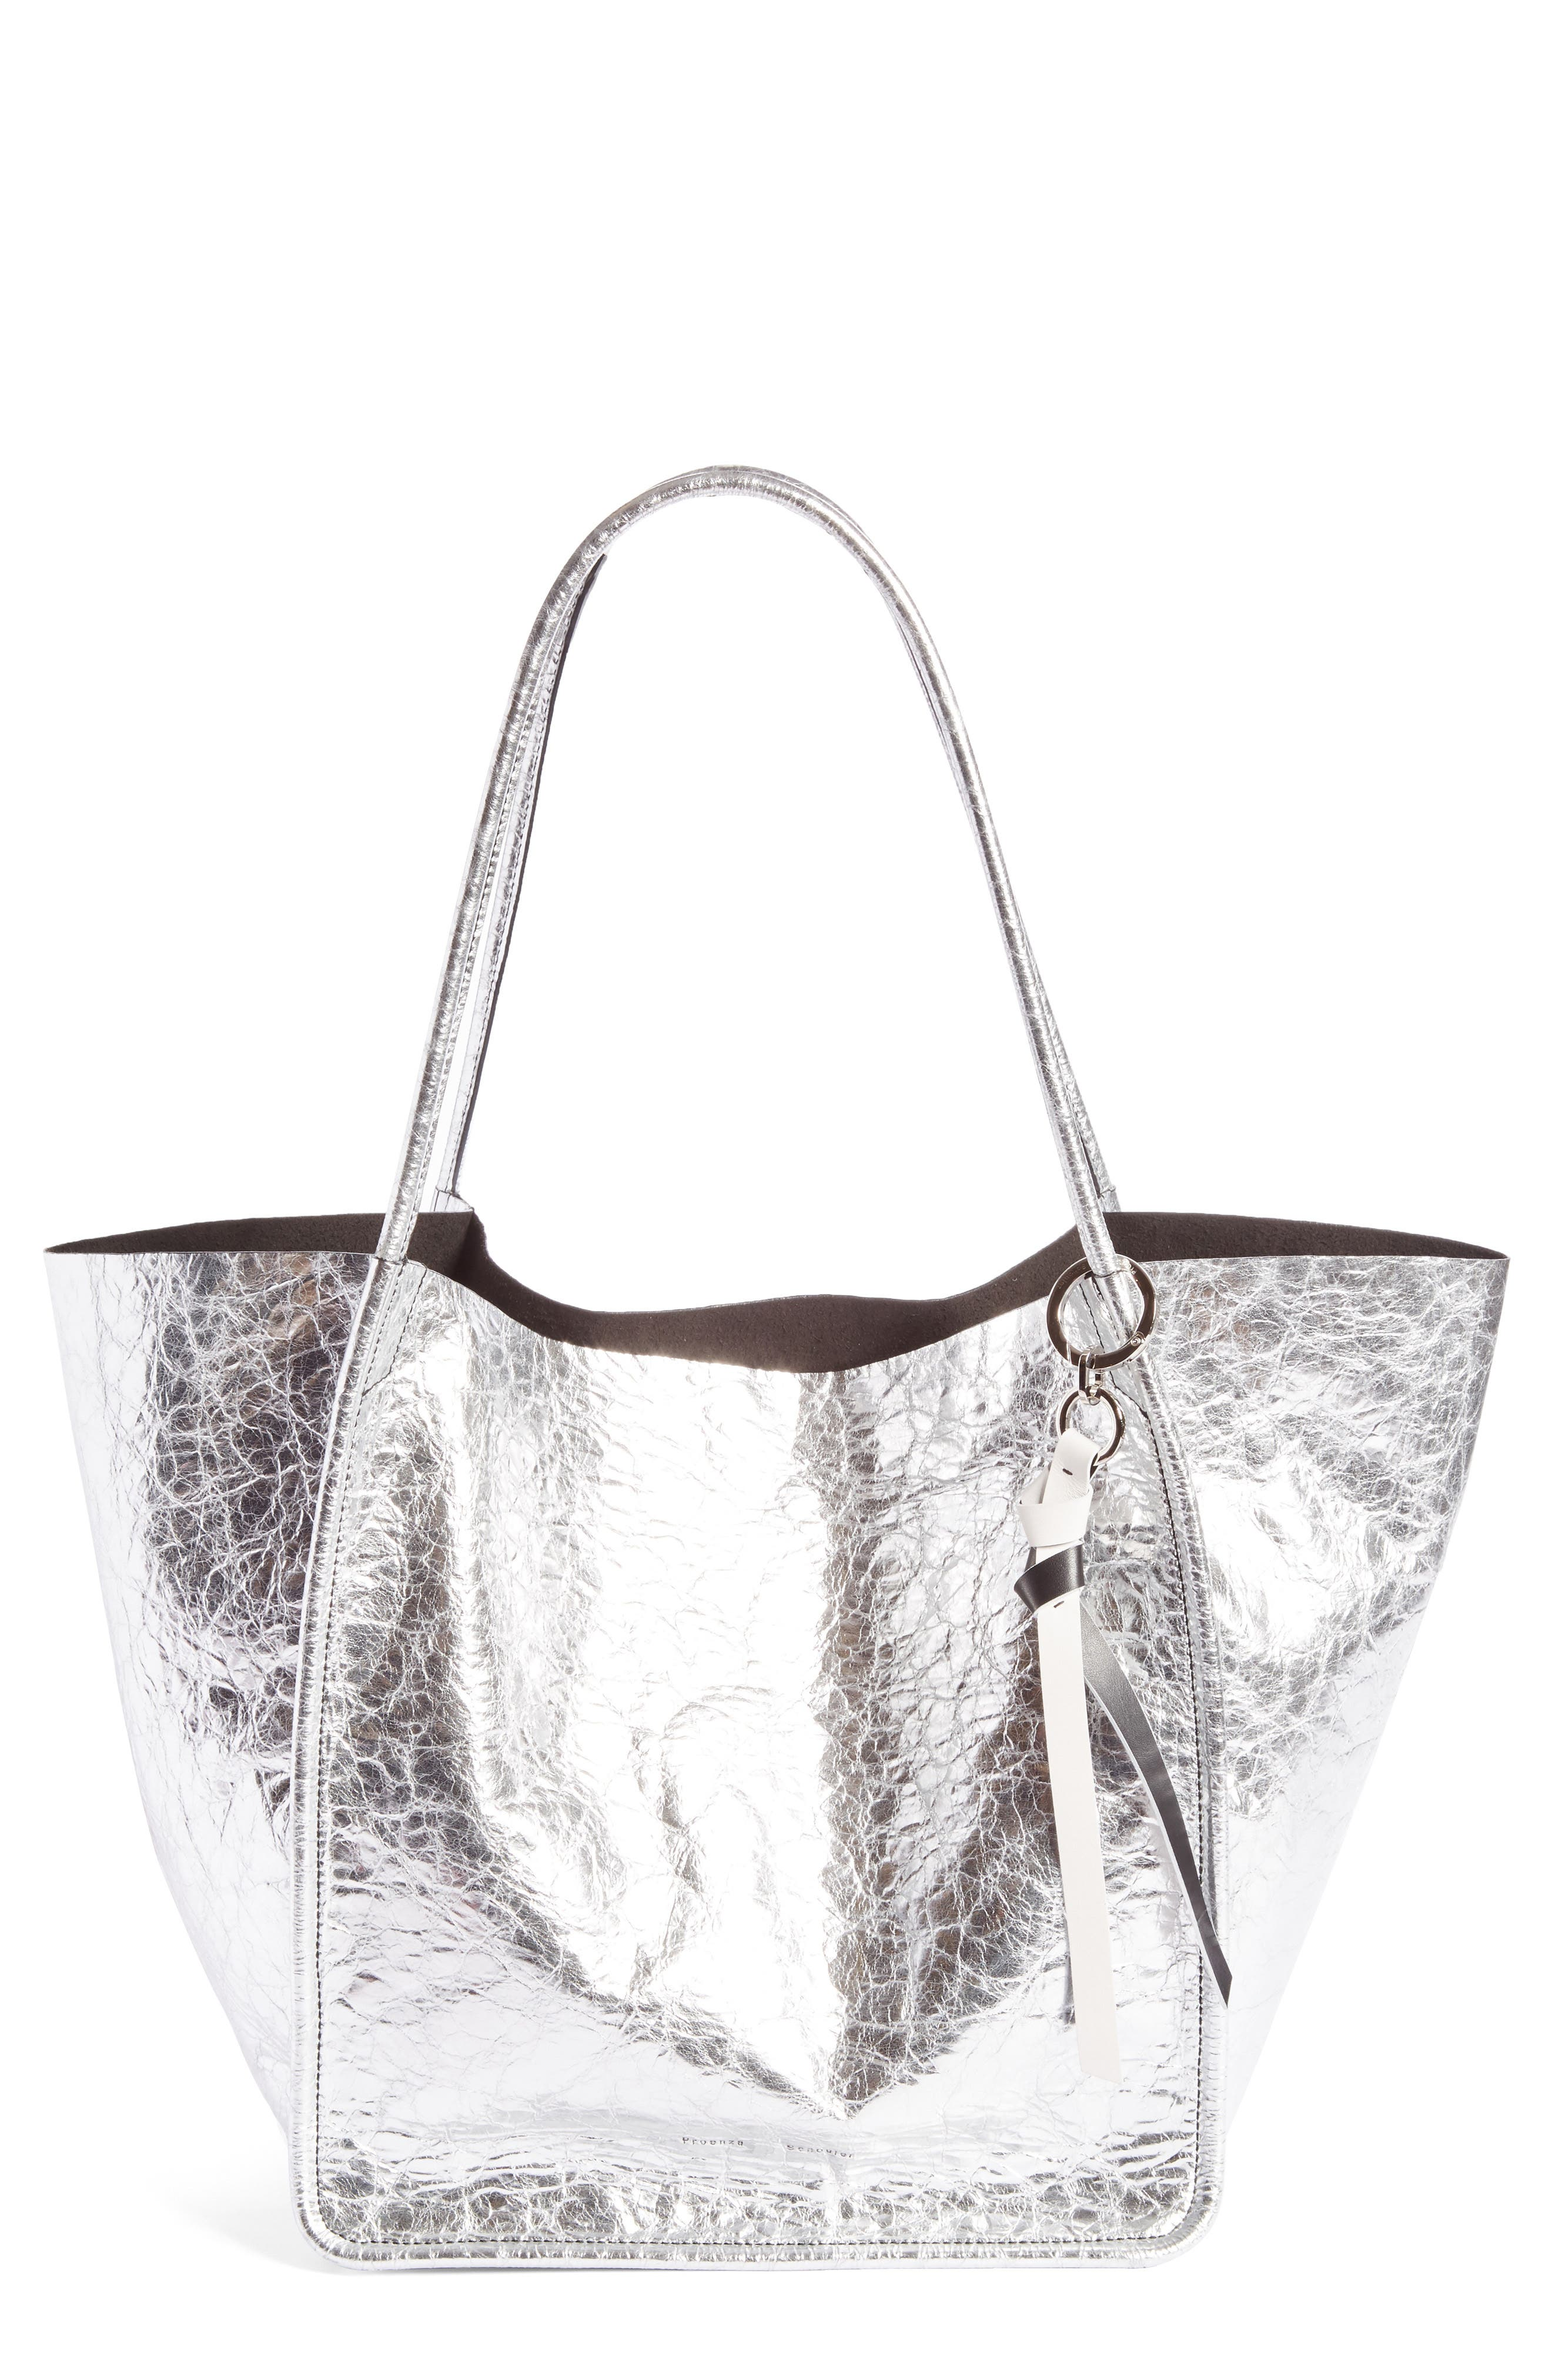 Proenza Schouler Extra Large Metallic Leather Tote